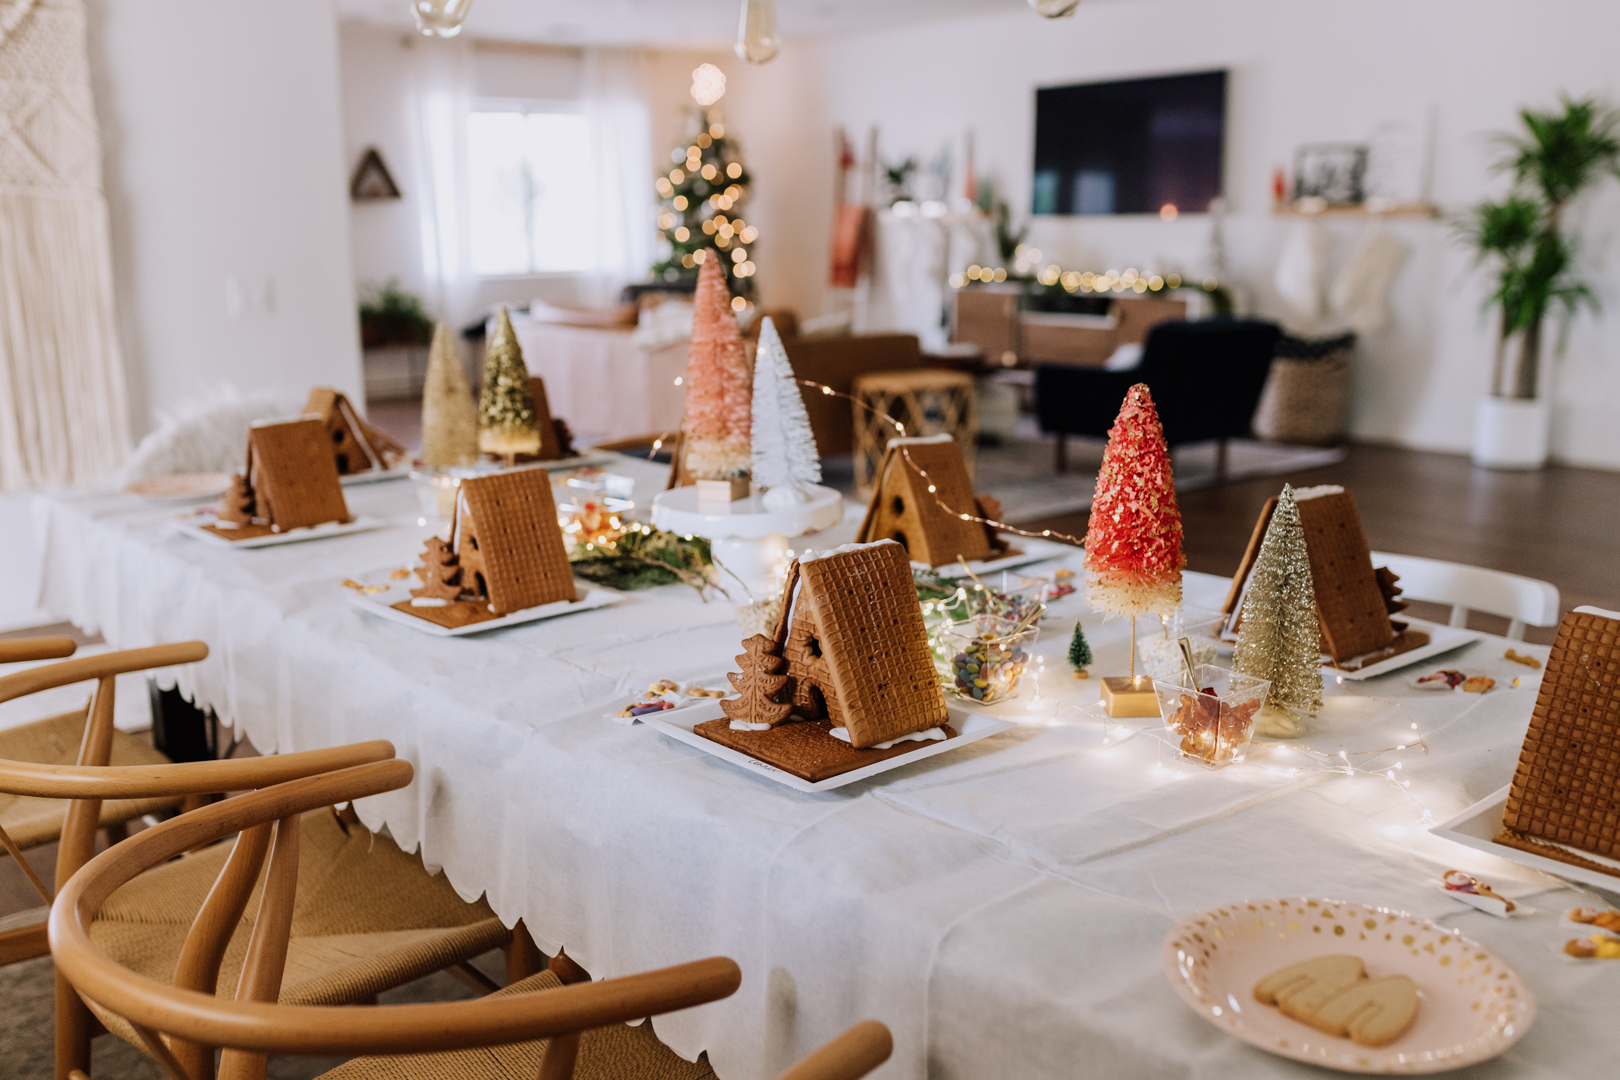 the table all set and ready to go! | thelovedesignedlife.com #gingerbreadhouse #holidayparty #kidparty #christmas